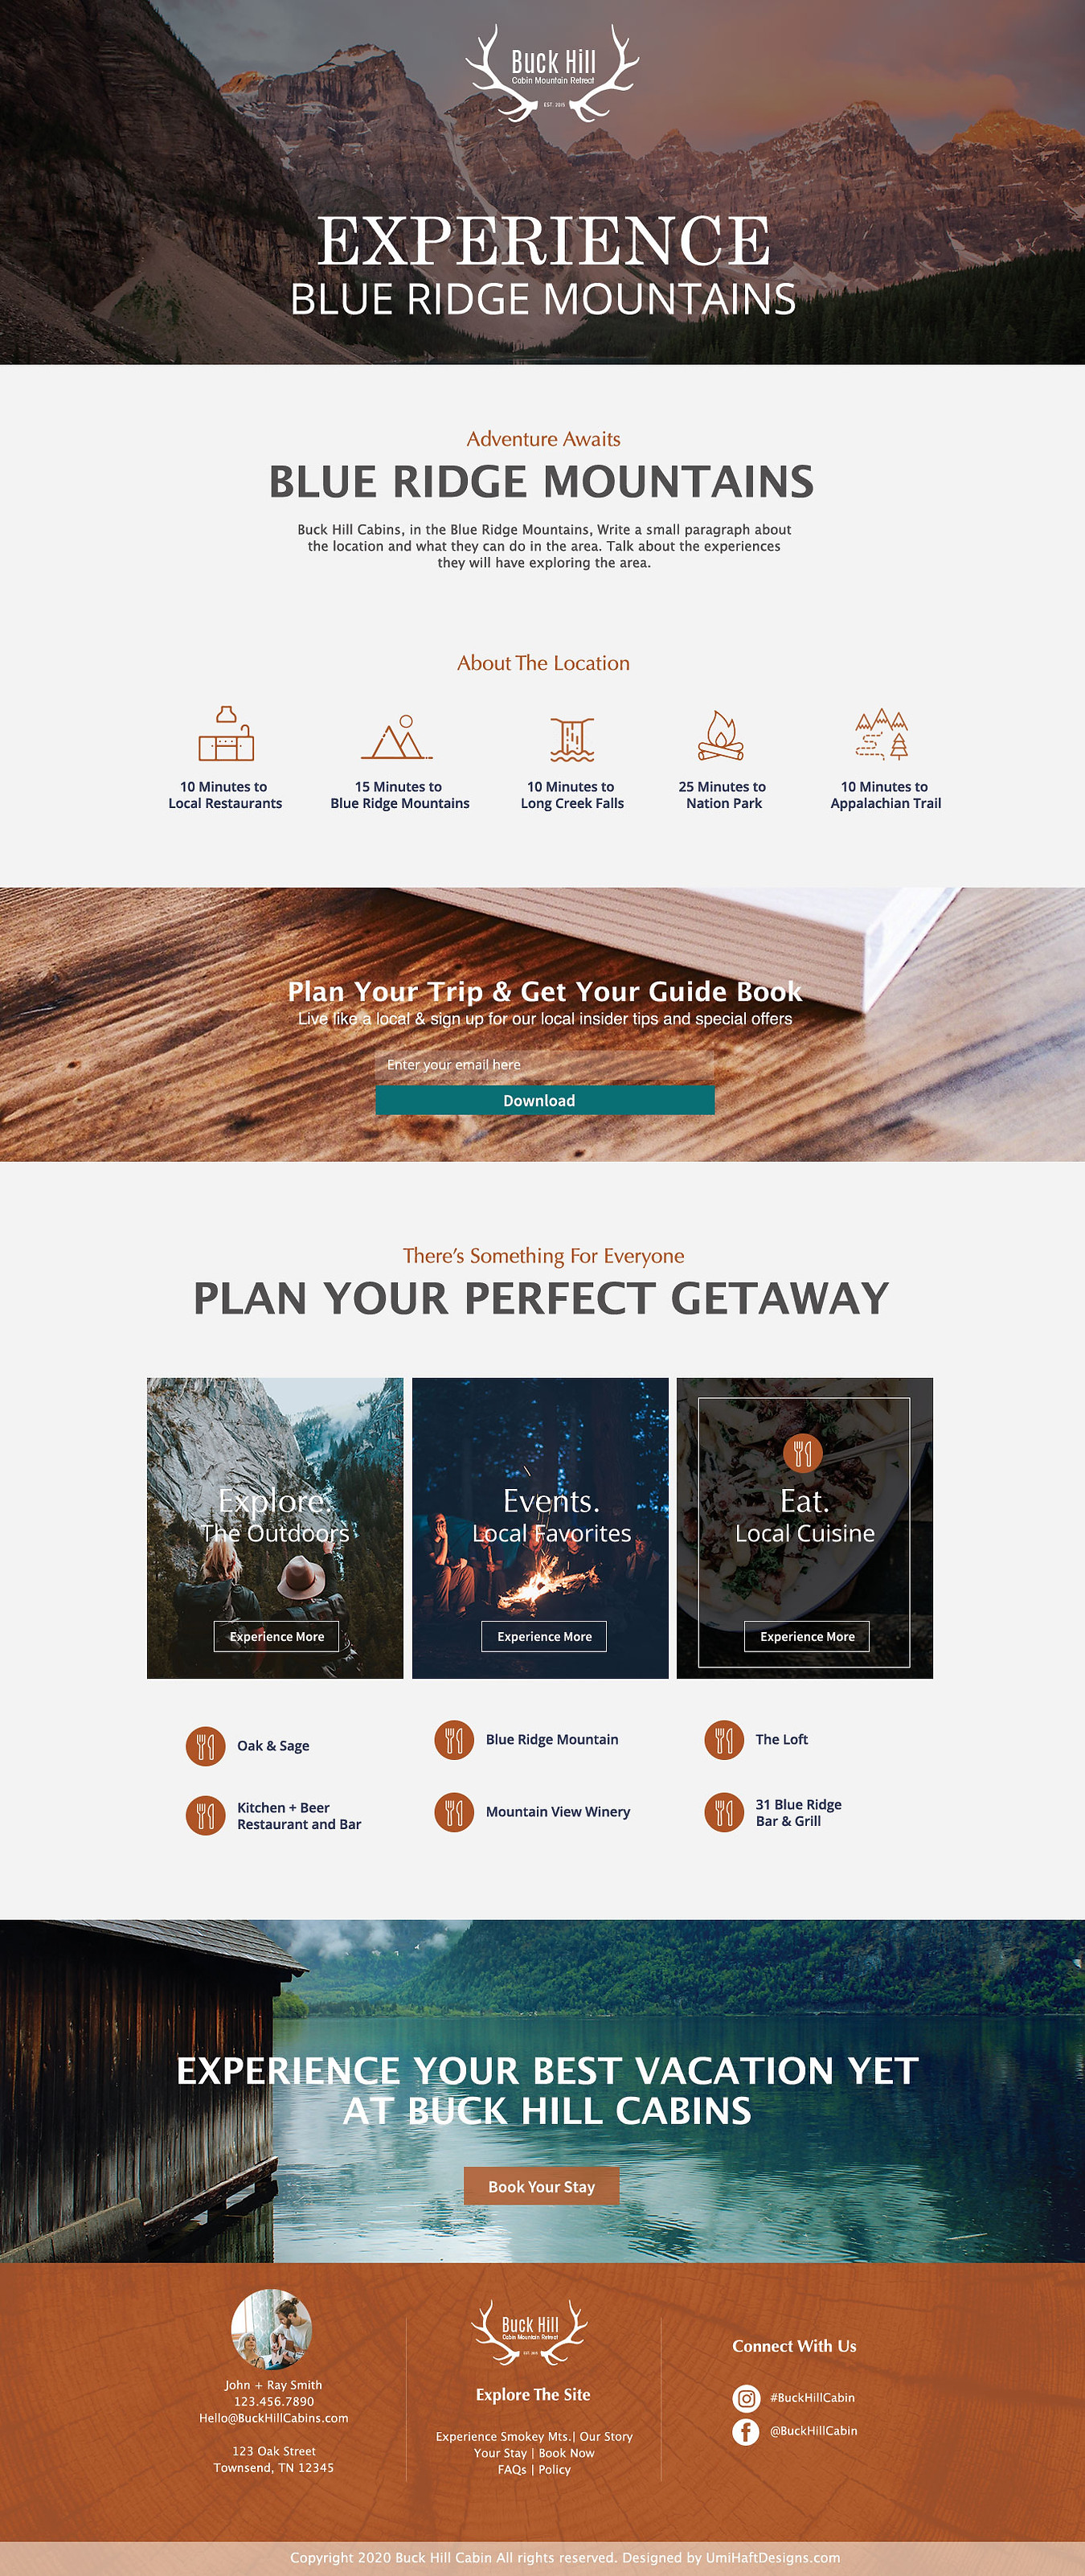 3-Experience-The-Great-Outdoors-Website-